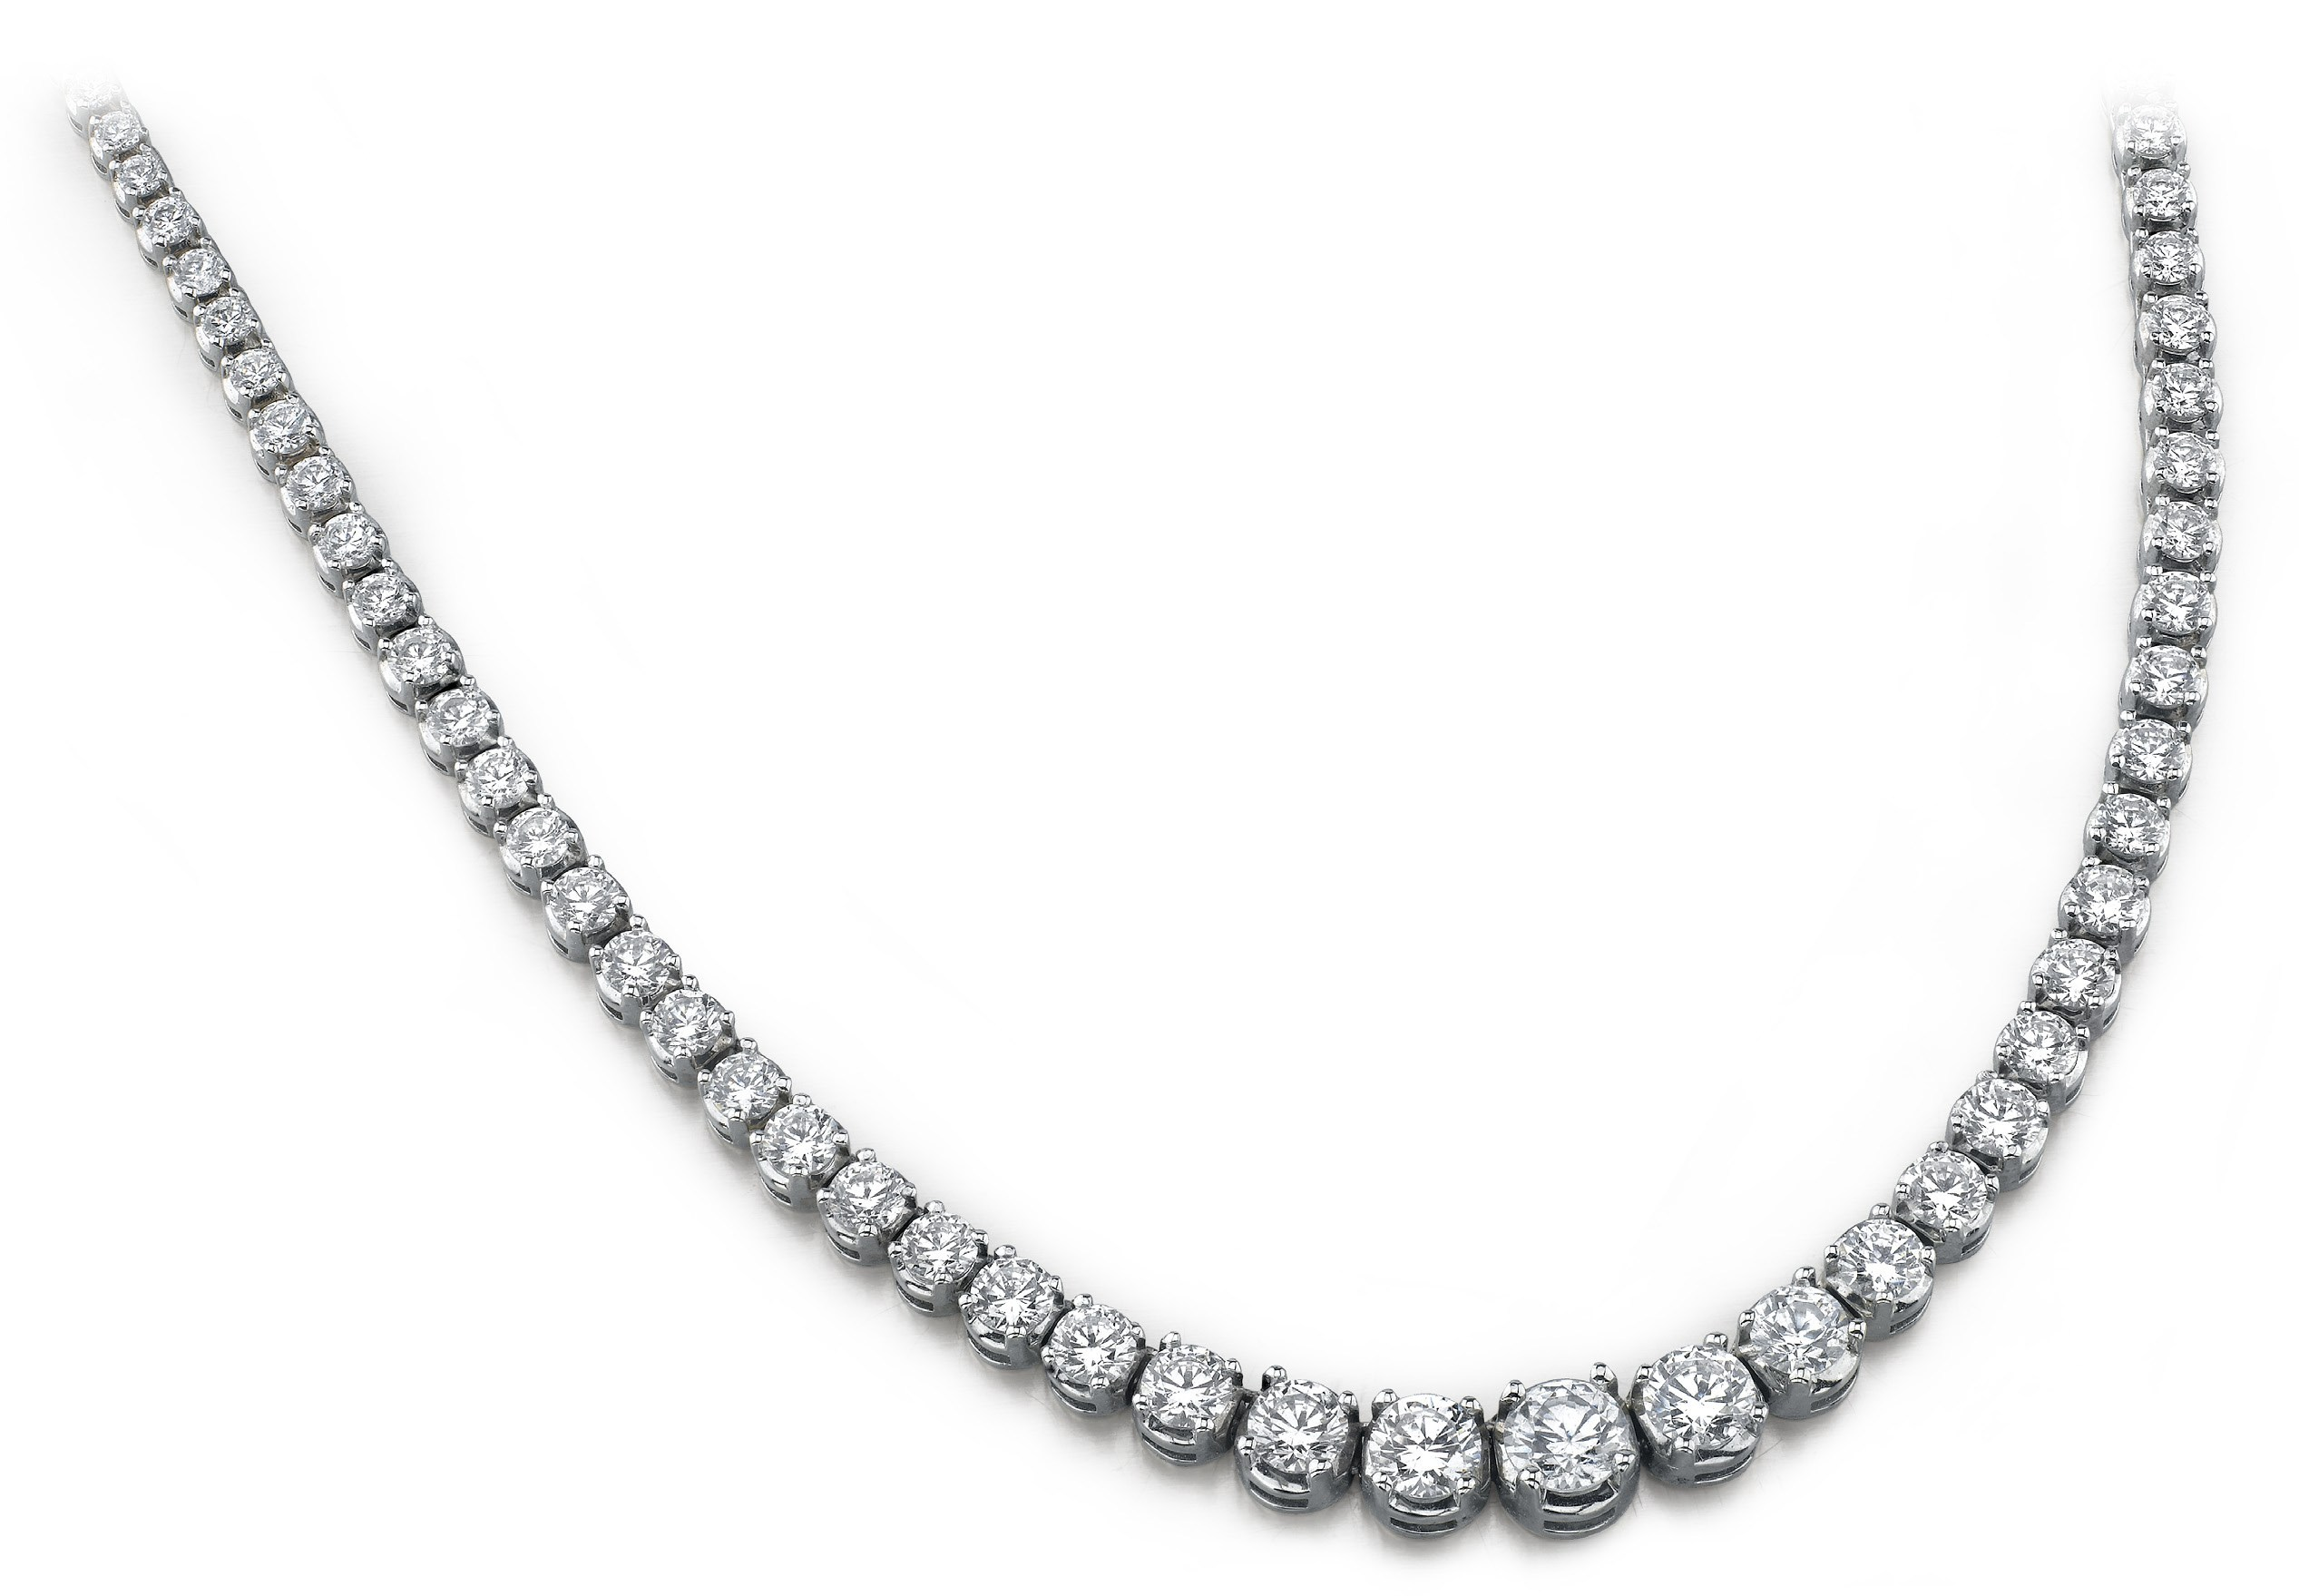 Diamond Necklace - 12.00 Carat Diamonds - 14K White Gold